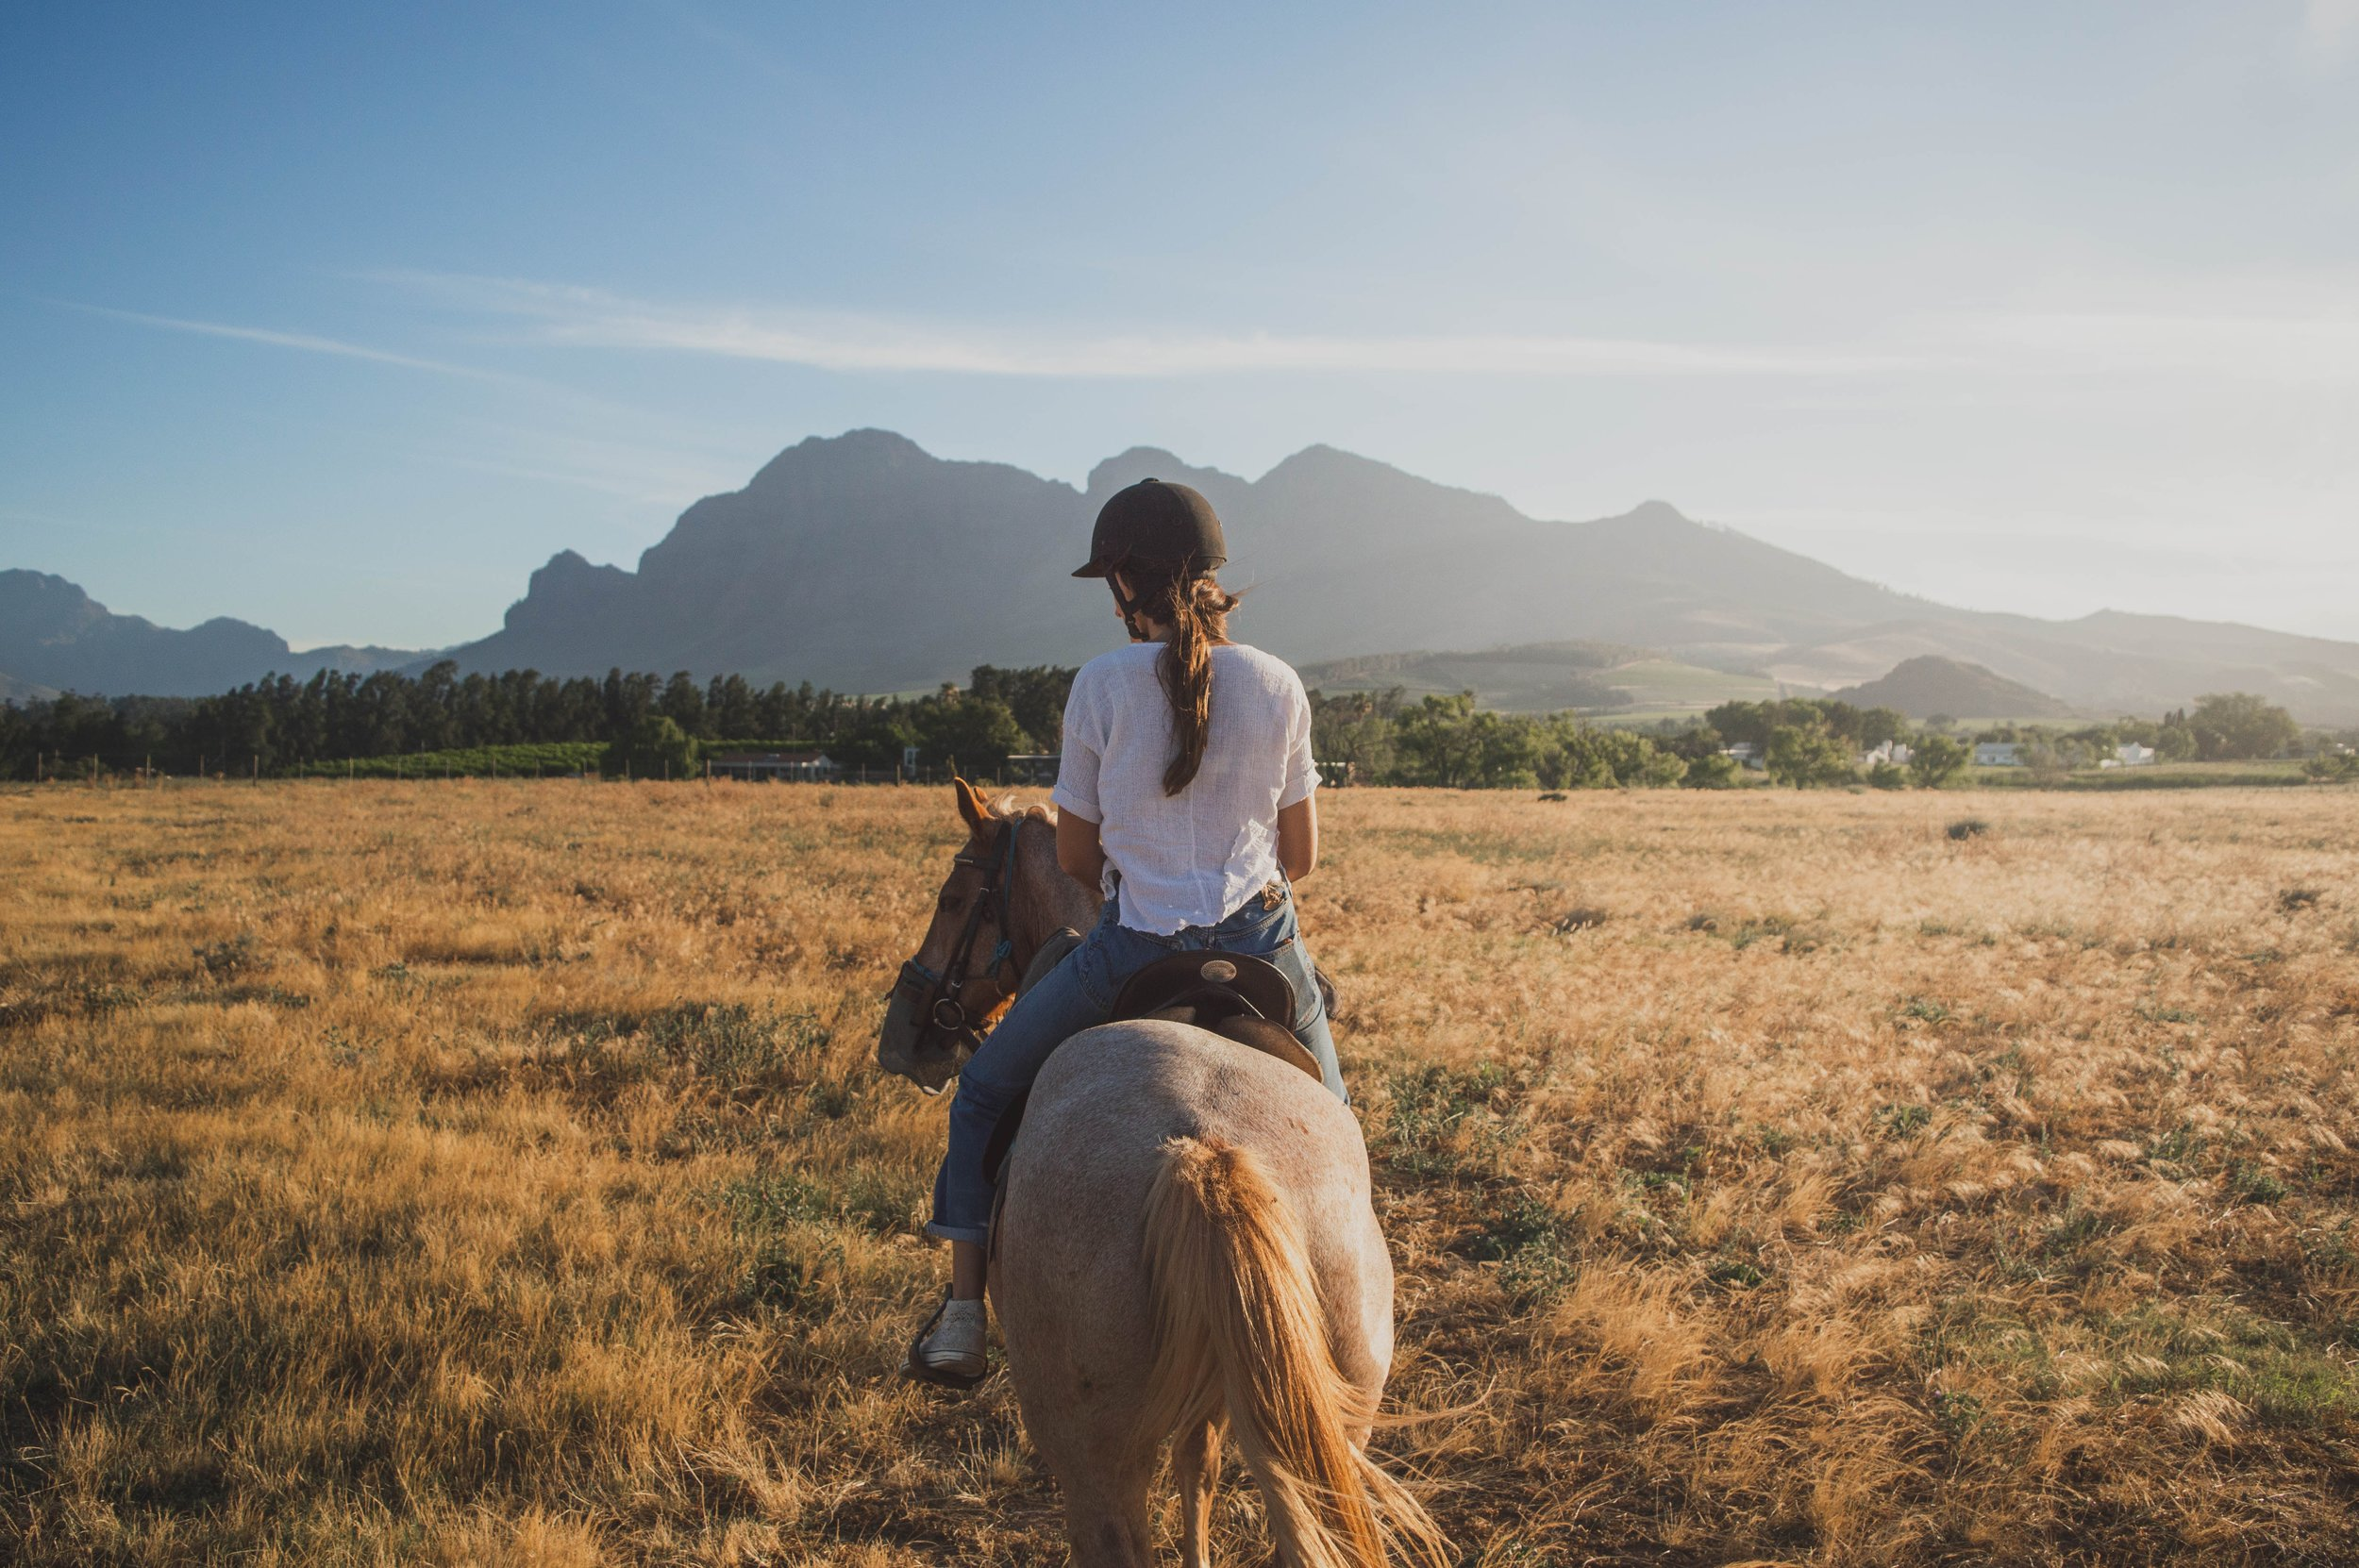 Sonoma Horseback-Riding Tour - Take in the scenery of California wine country on a horseback ride in Sonoma County.With a guide, you'll have the chance to admire the vineyards of Dry Creek Valley and the waters of Lake Sonoma as you traverse the rolling wilderness on horseback.